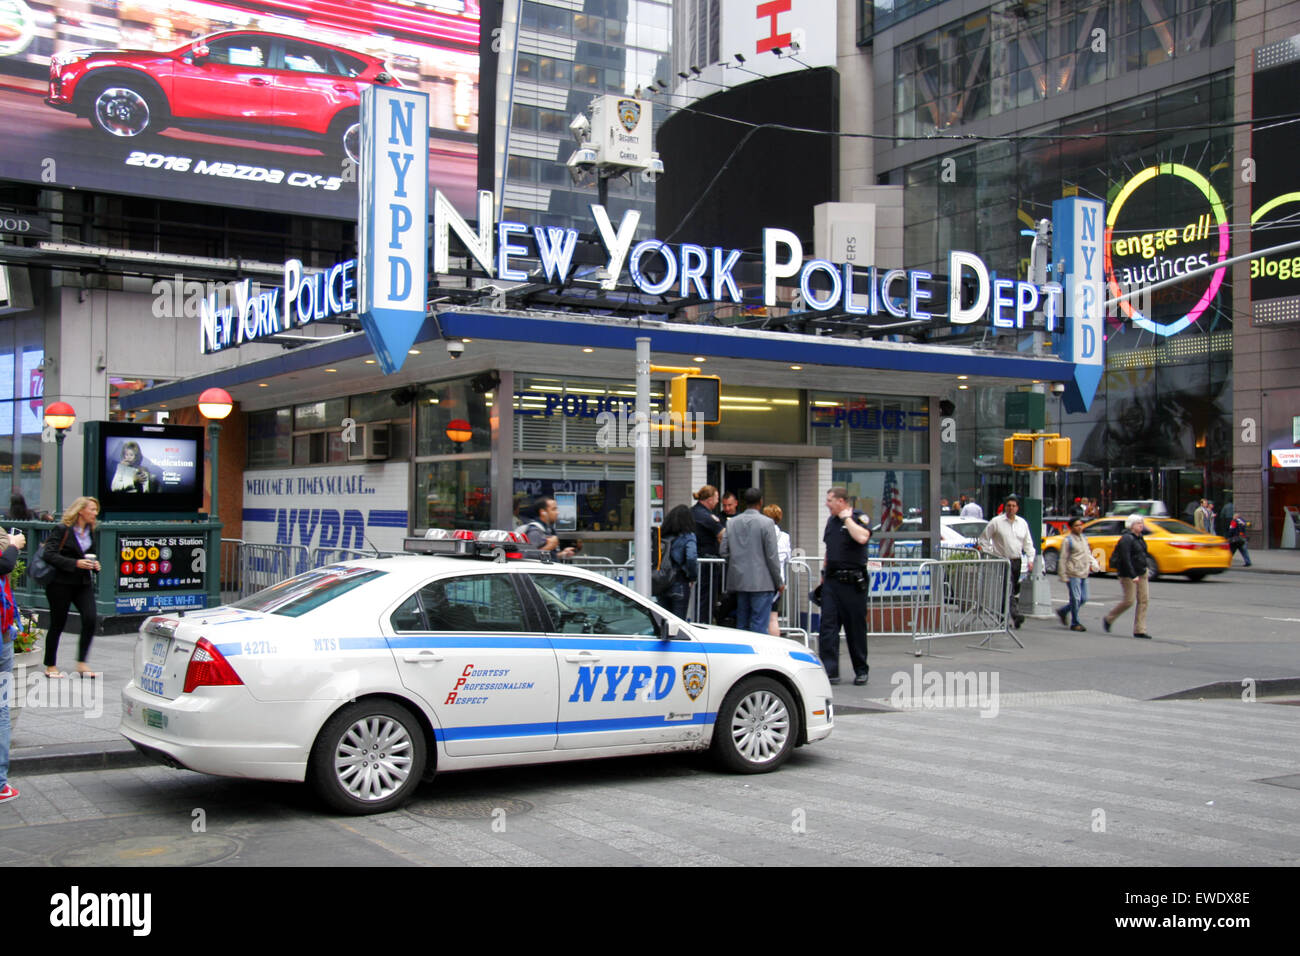 Image gallery new york police department for Bureau new york